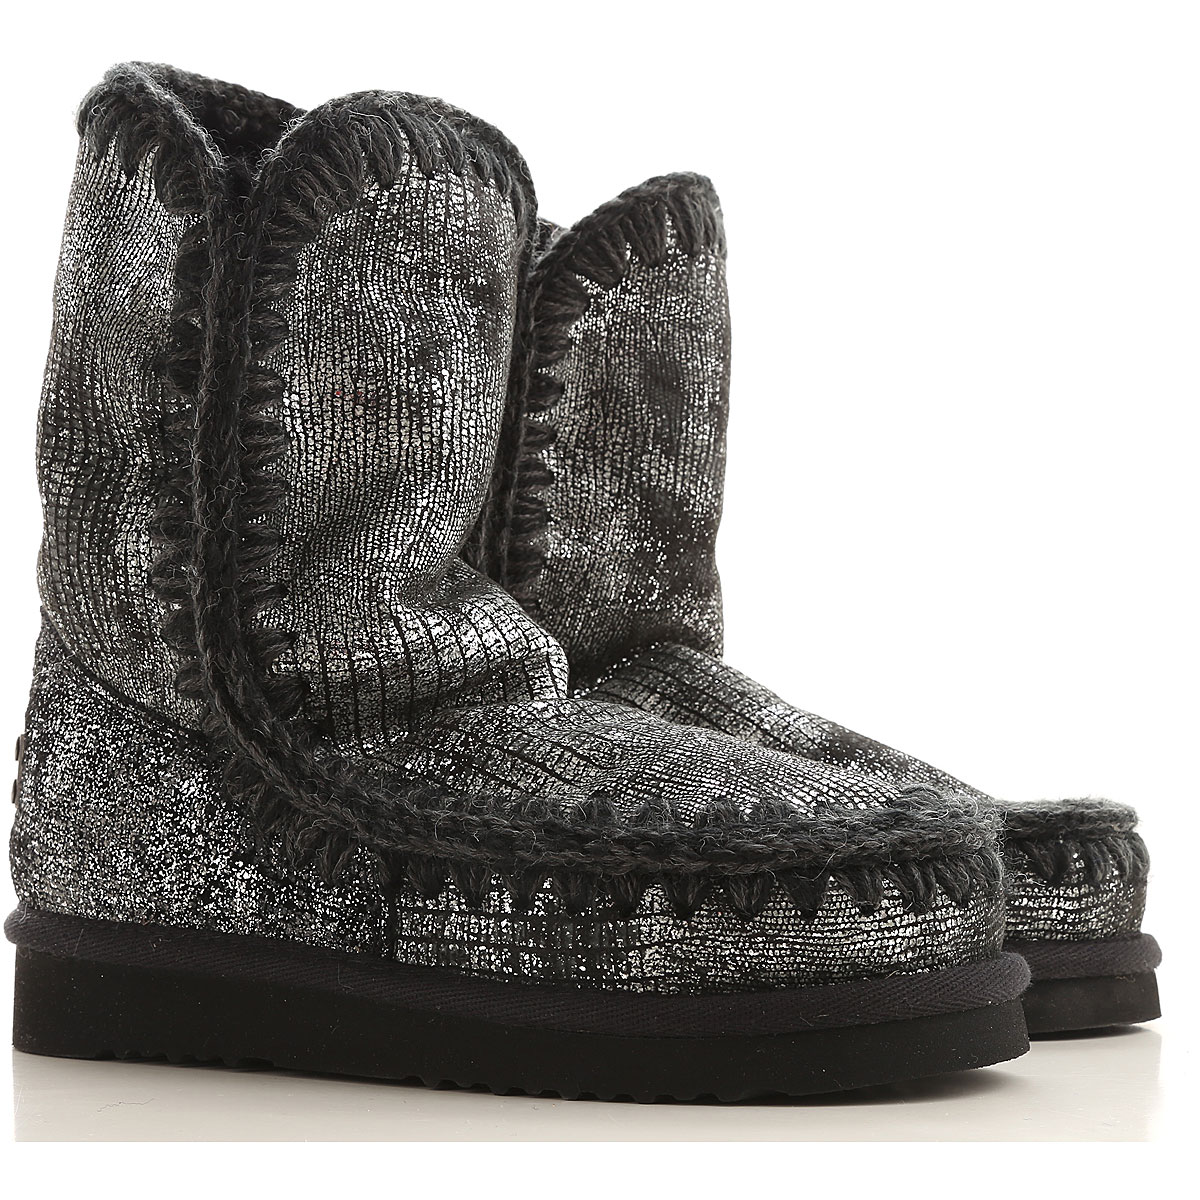 Mou Boots for Women, Booties On Sale in Outlet, Gunmetal, sheepskin, 2019, EUR 36 - UK 3 - USA 5.5 EUR 37 - UK 4 - USA 6.5